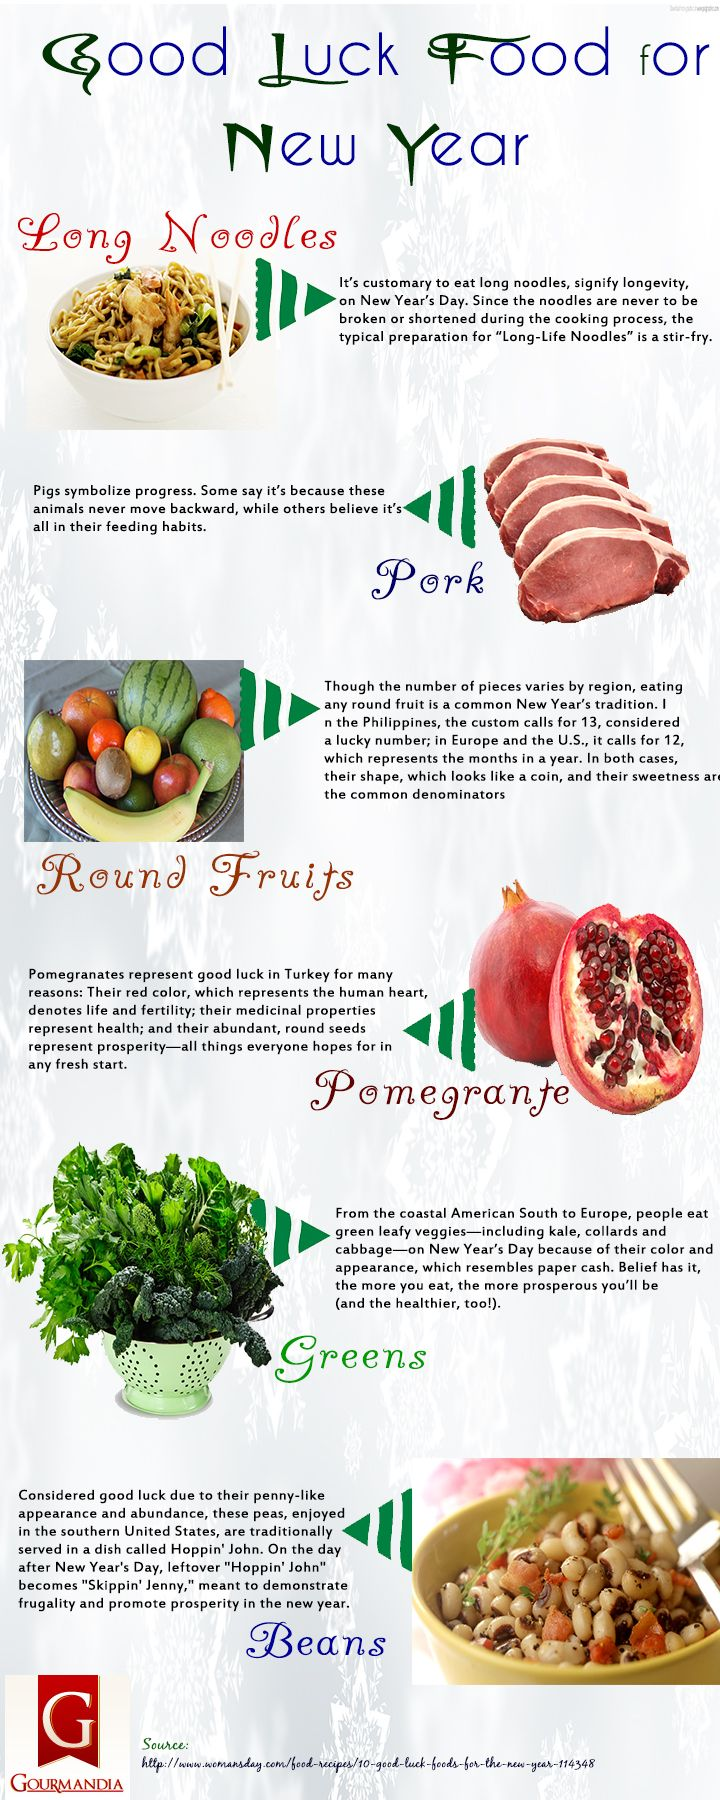 Good Luck Food For New Year   #Infographic #Food #NewYear